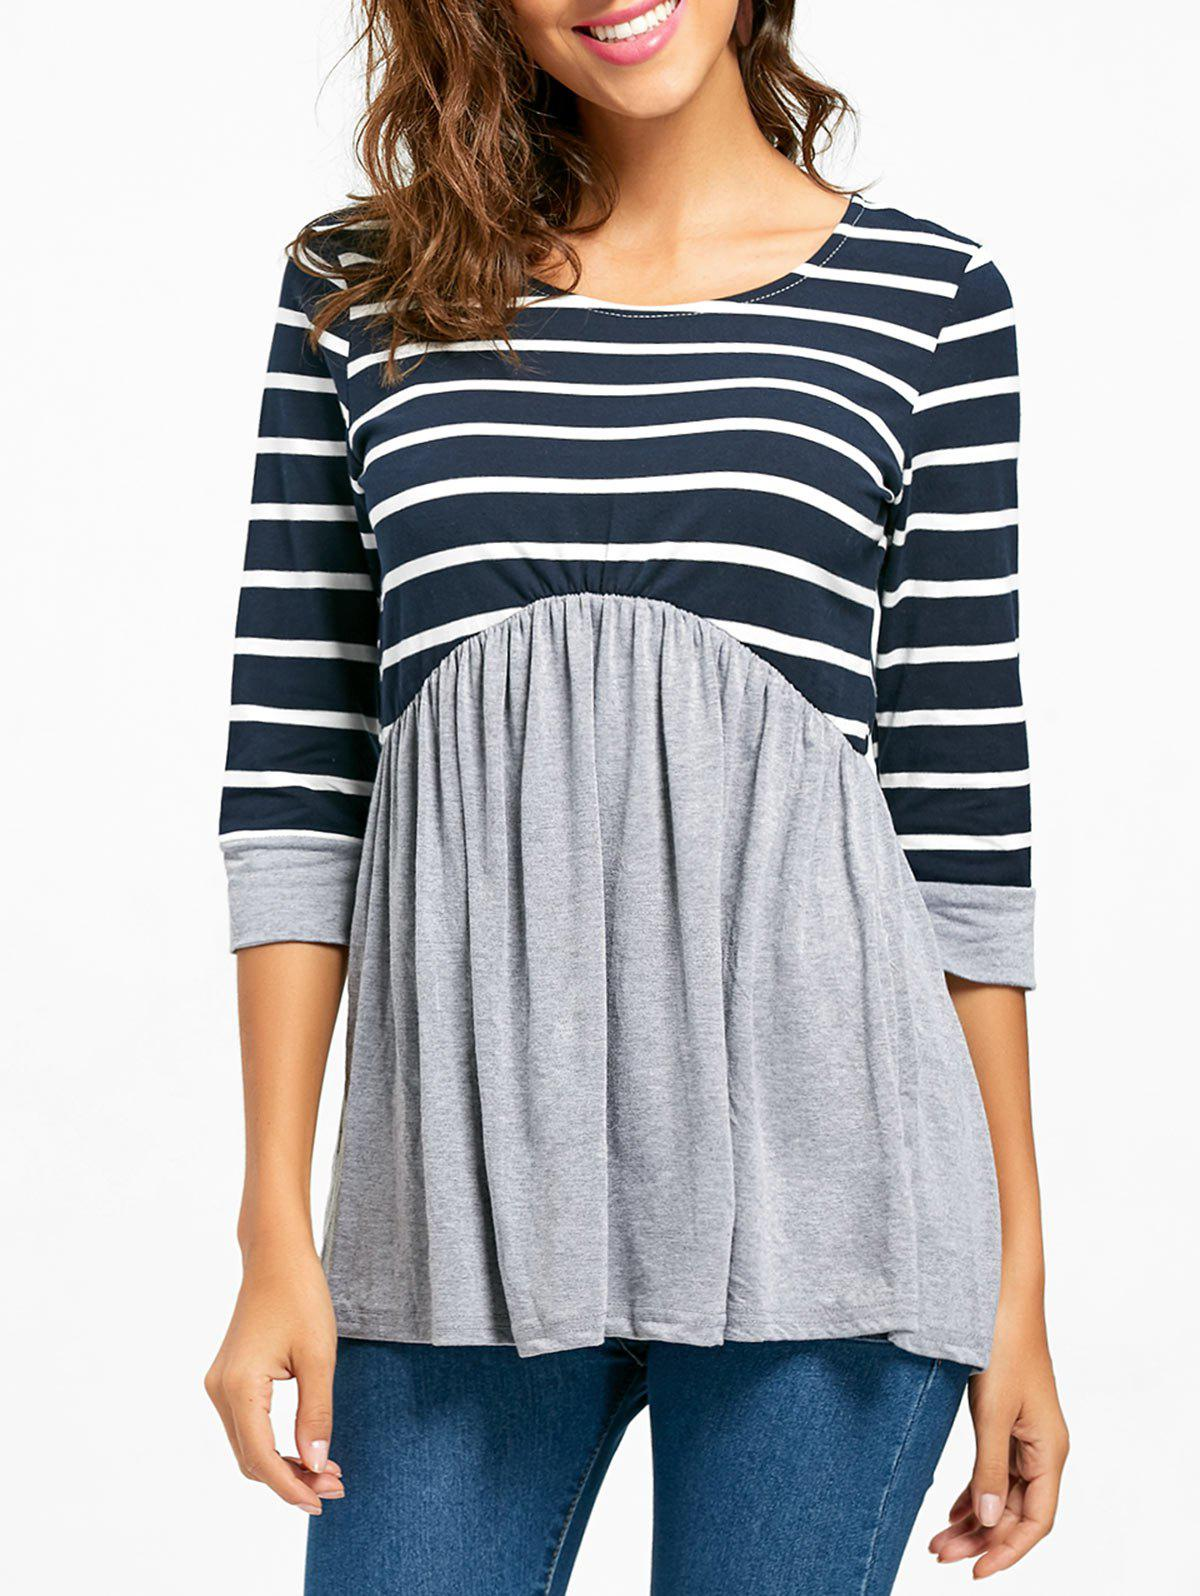 Striped Panel Casual Tunic Top - GRAY L